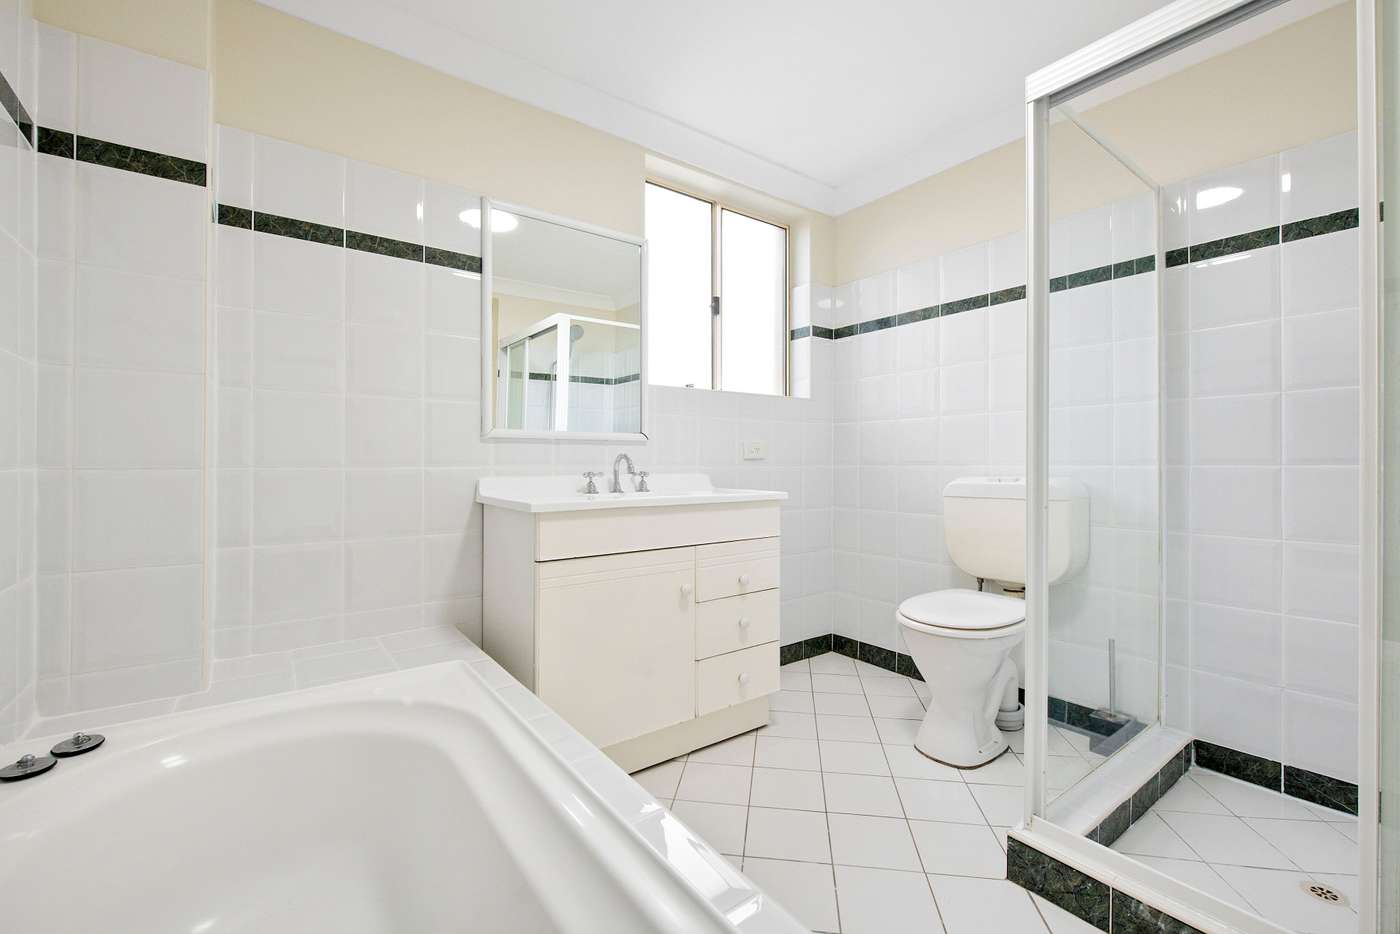 Fifth view of Homely unit listing, 19/6-10 May Street, Hornsby NSW 2077